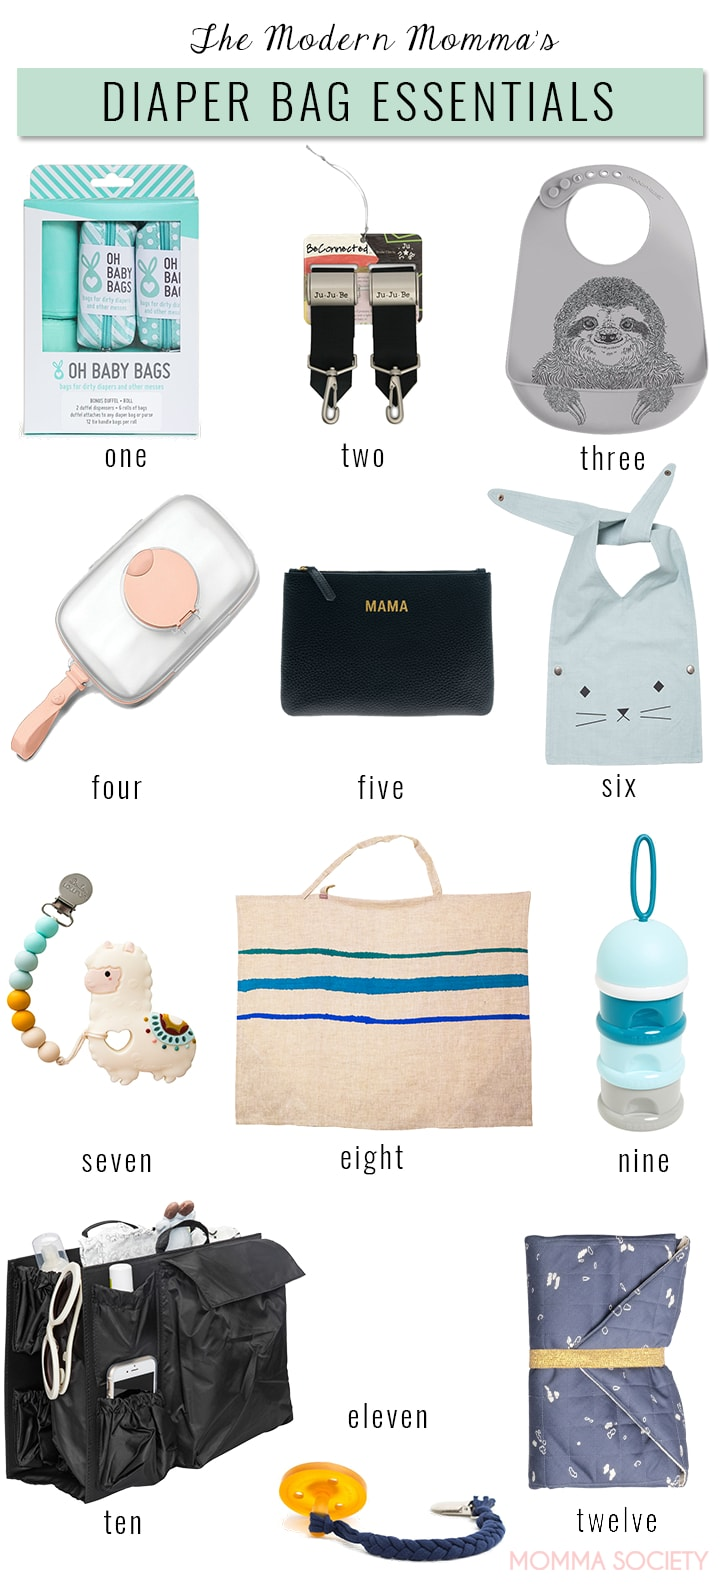 Diaper Bag Essentals.jpg